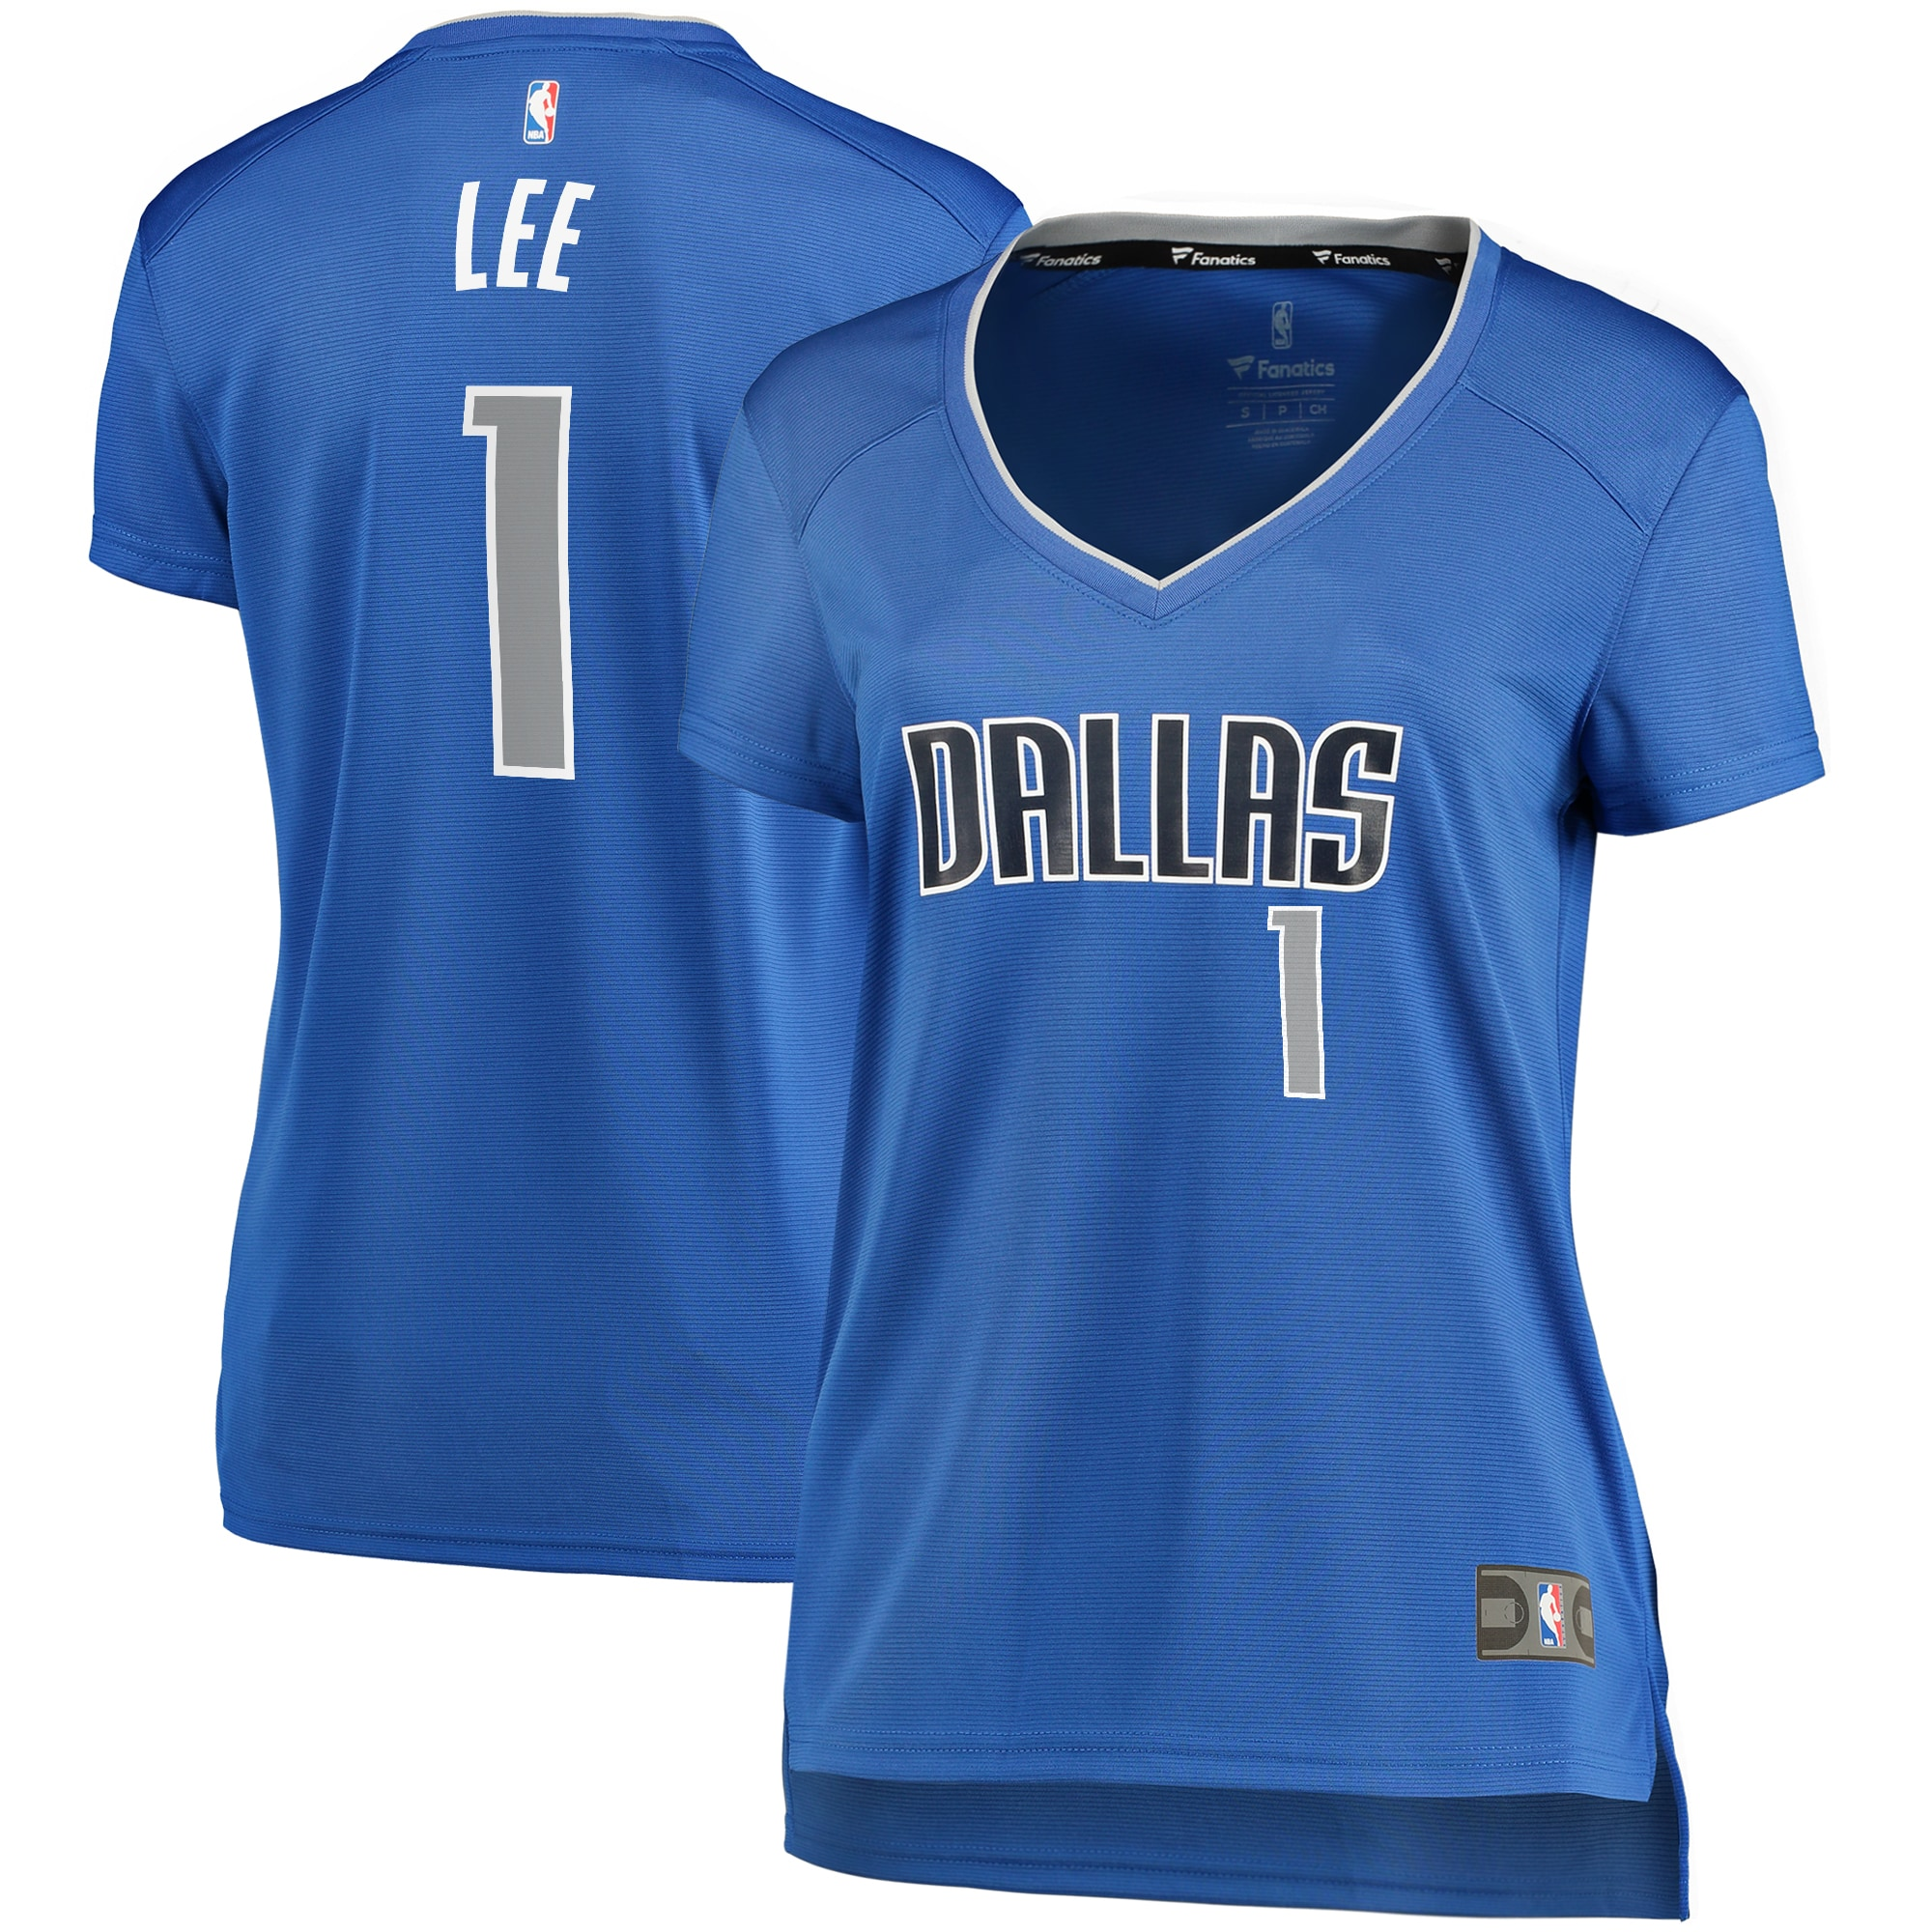 Courtney Lee Dallas Mavericks Fanatics Branded Women's Fast Break Player Replica Jersey - Icon Edition - Blue